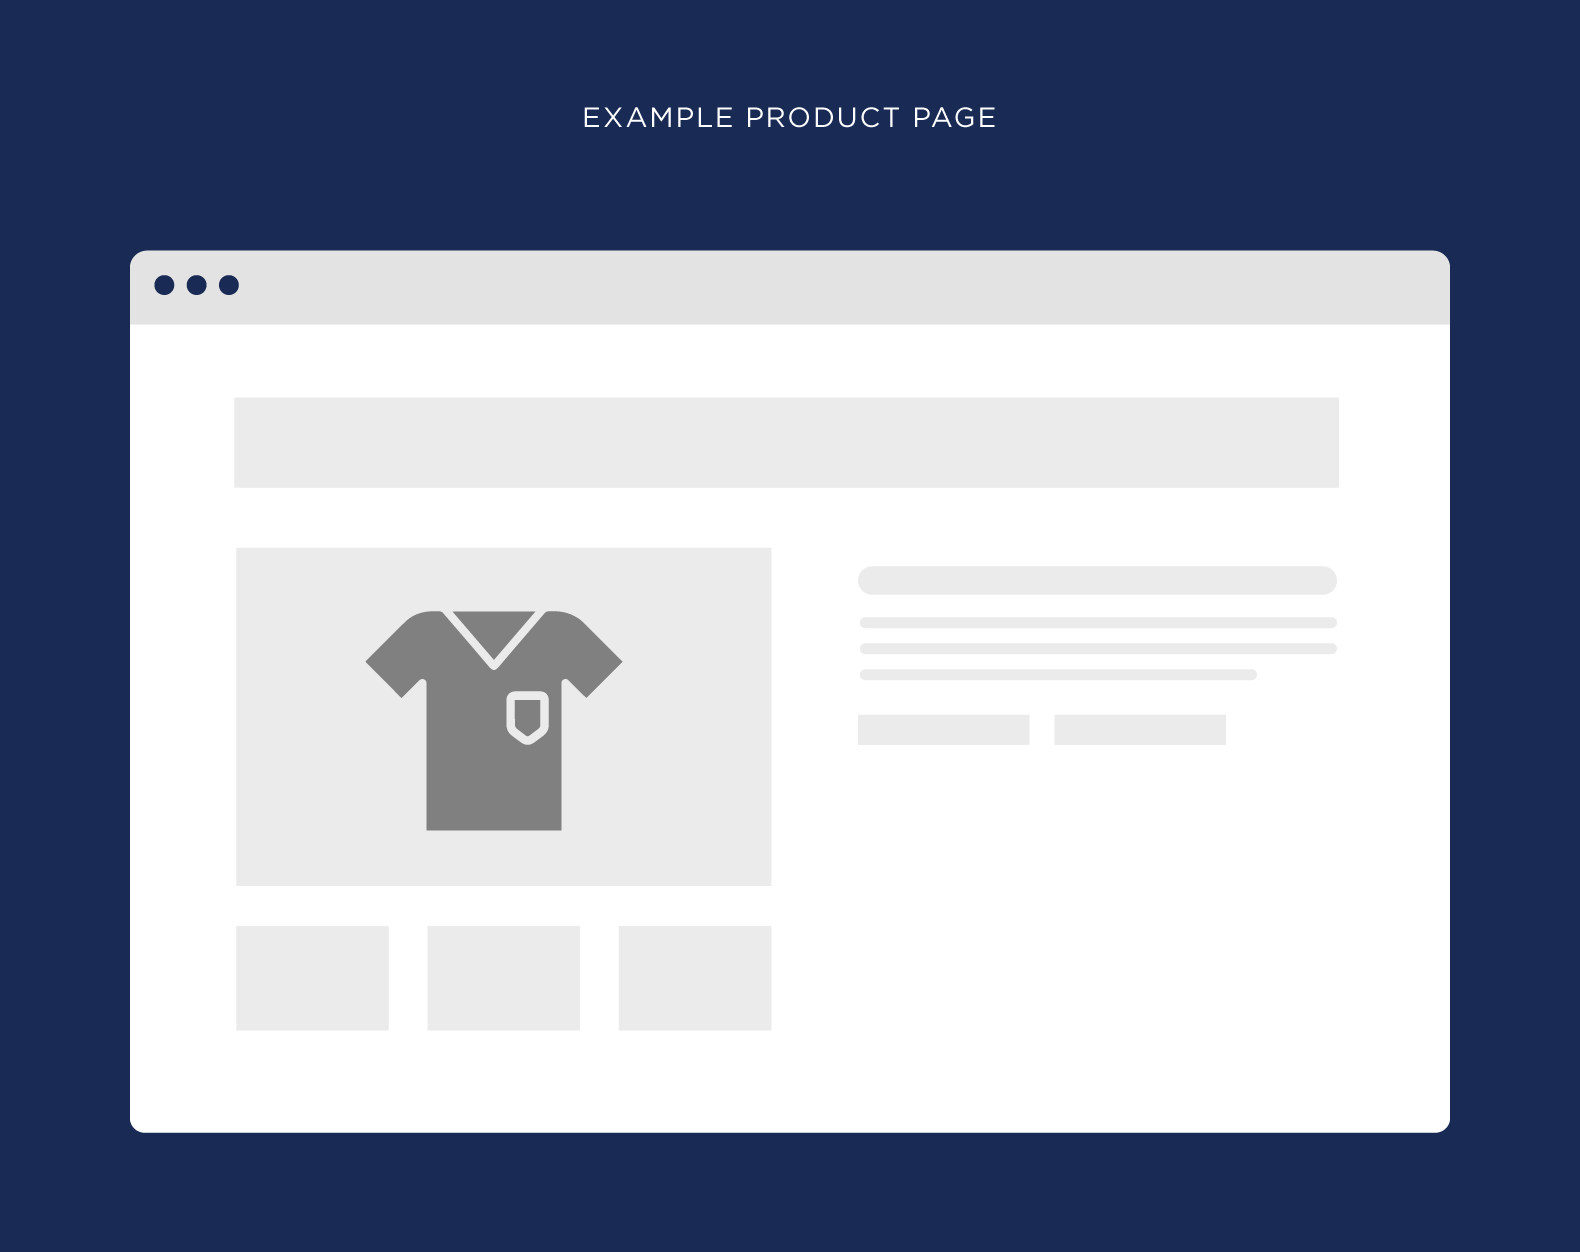 Example product page